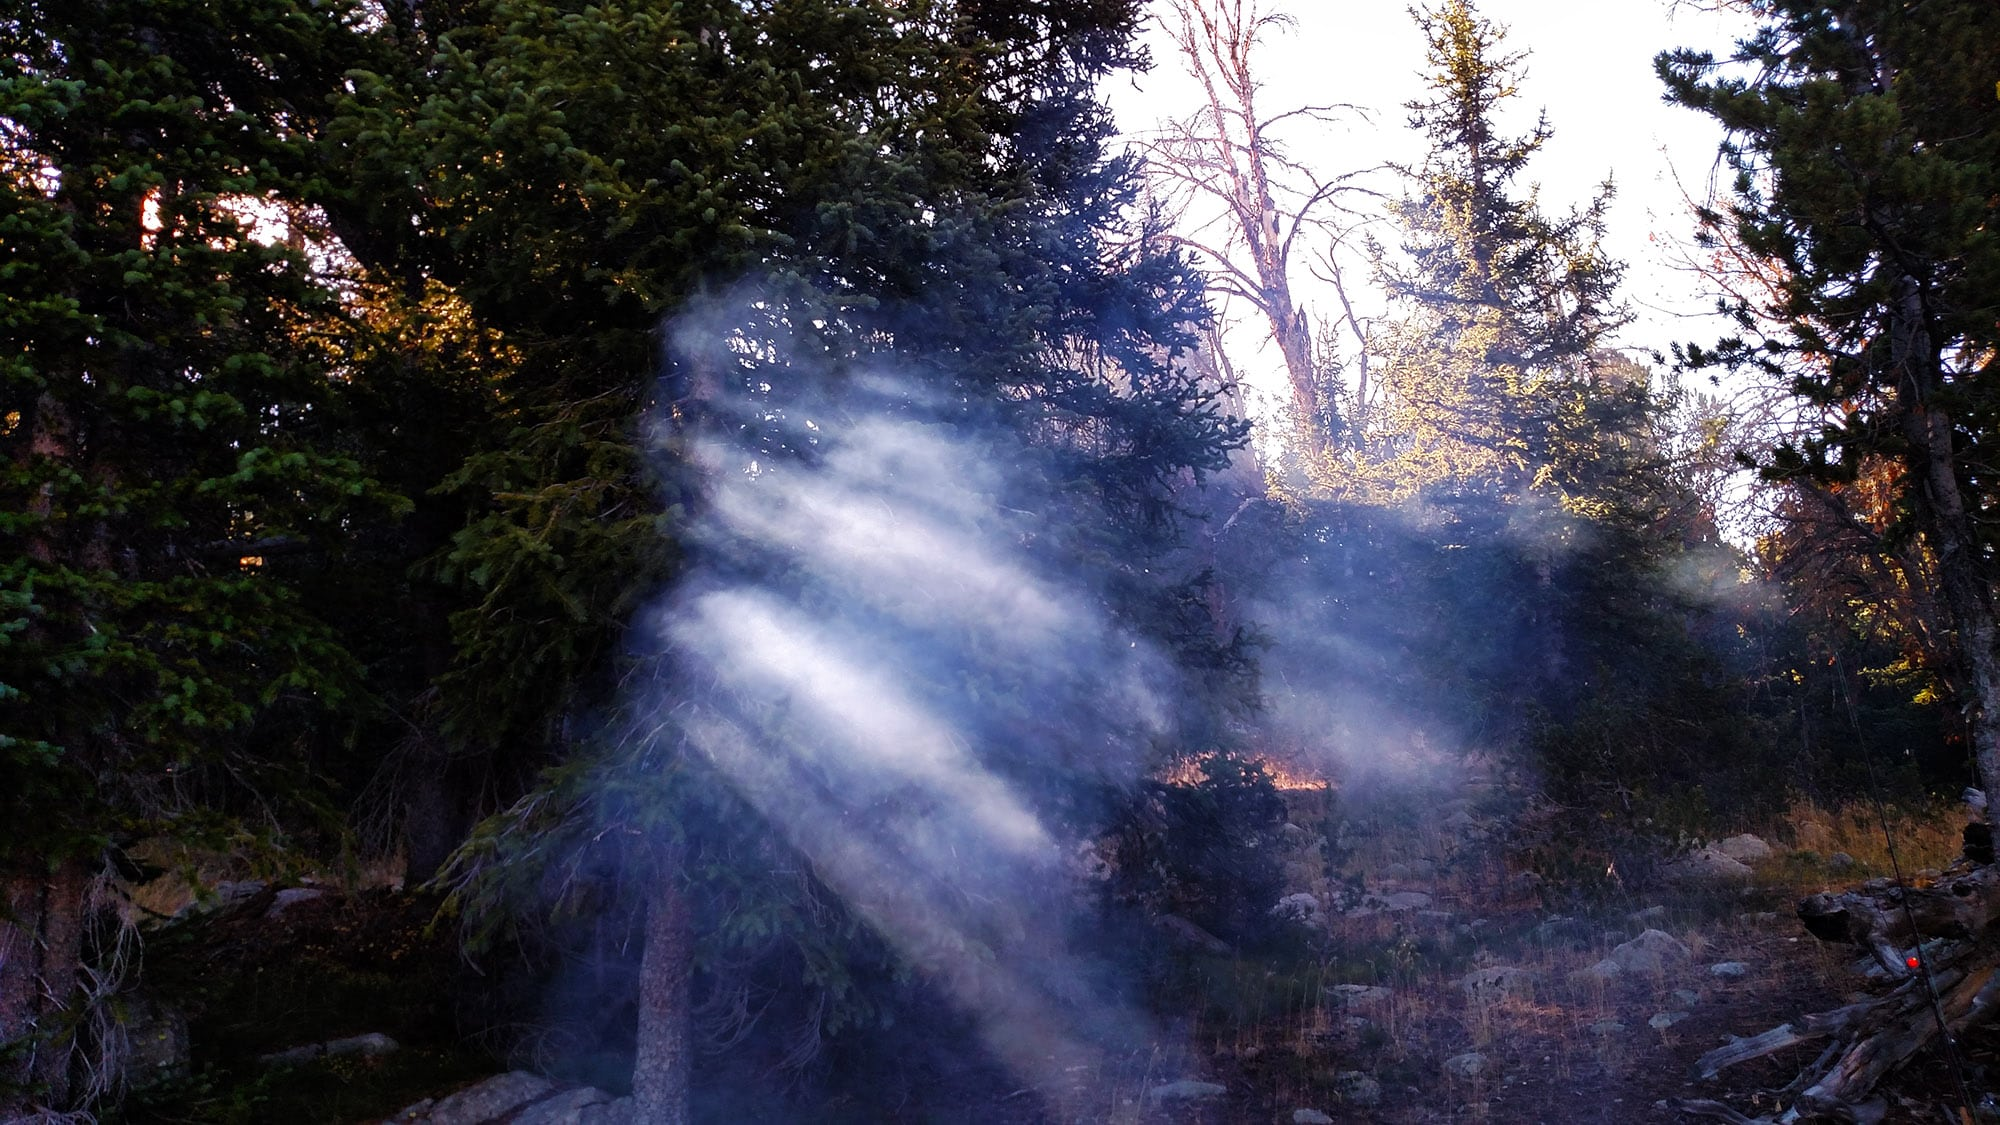 Smoke from campfire in early morning with sun light coming through trees